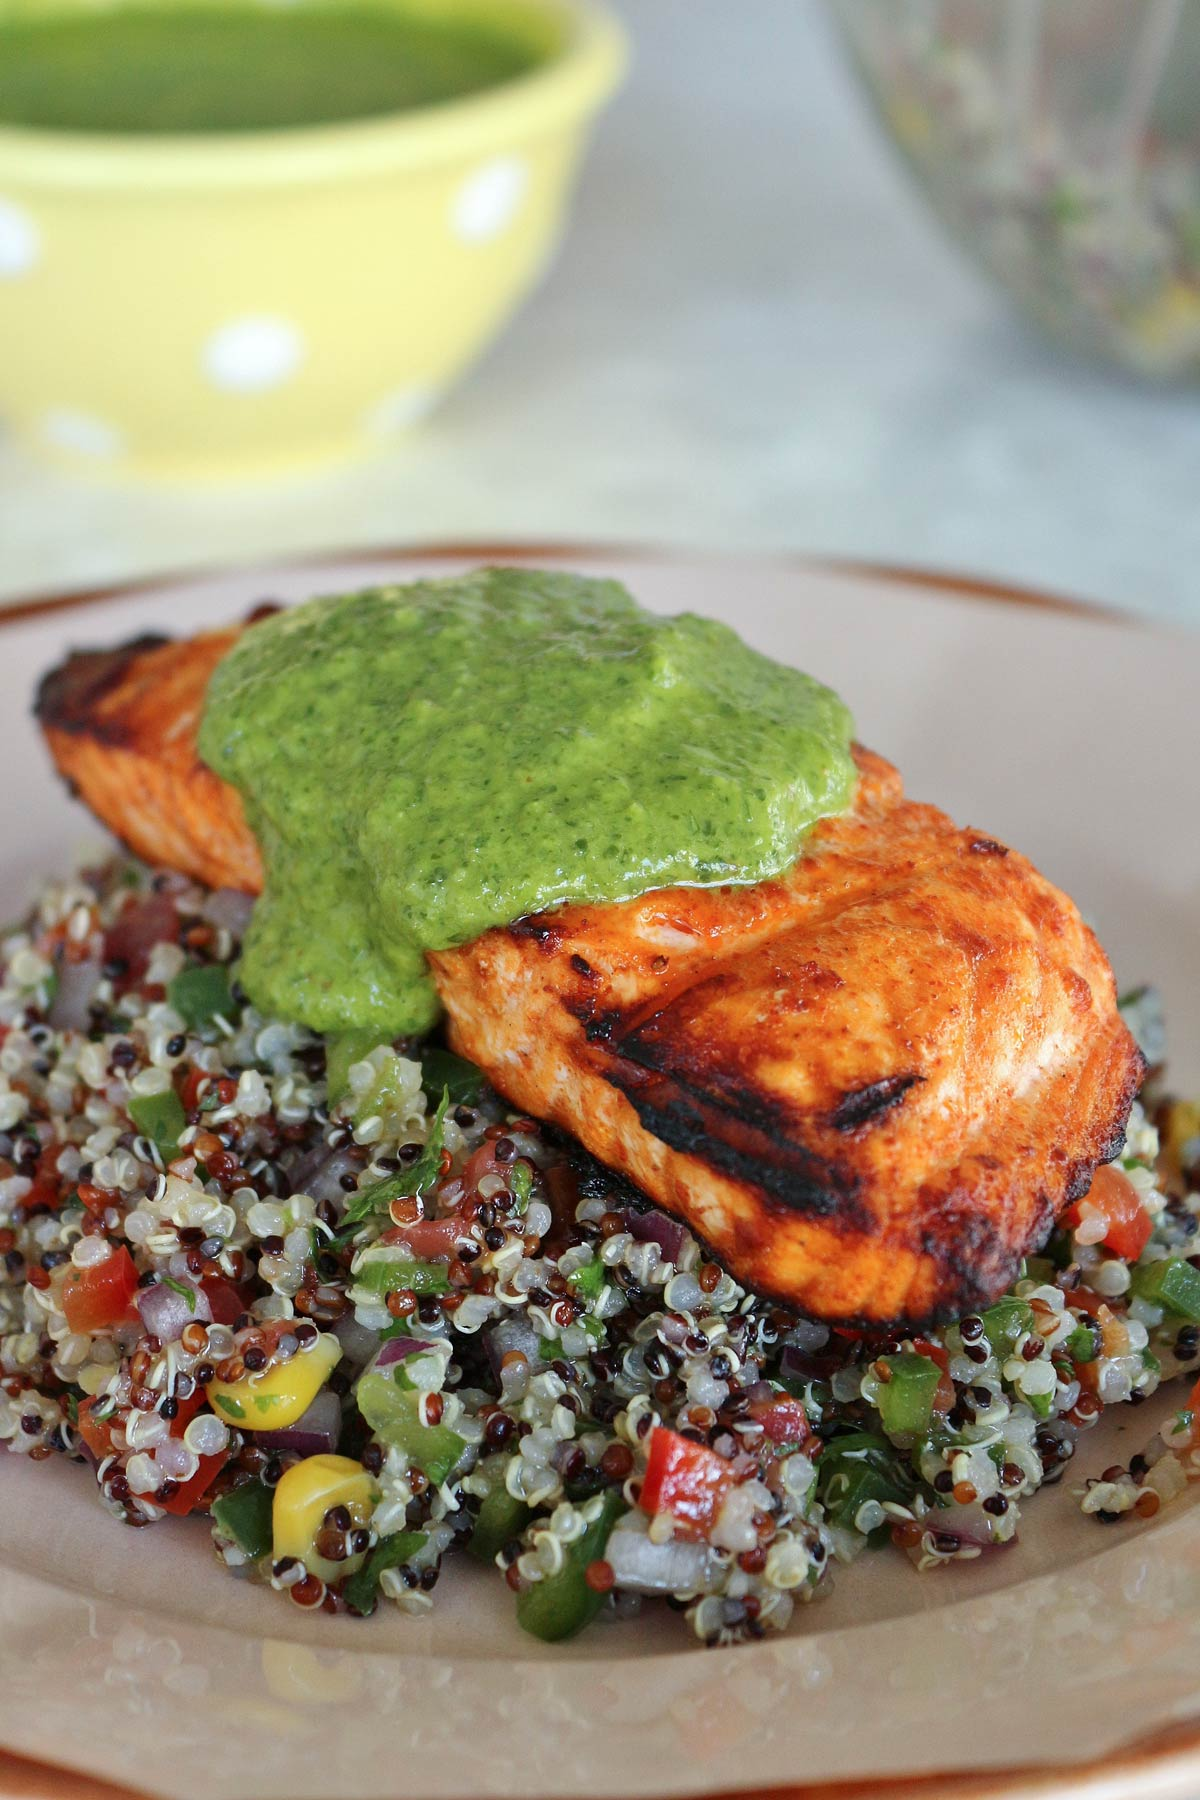 A grilled salmon fillet on a bed of quinoa salad topped with bright green sauce.